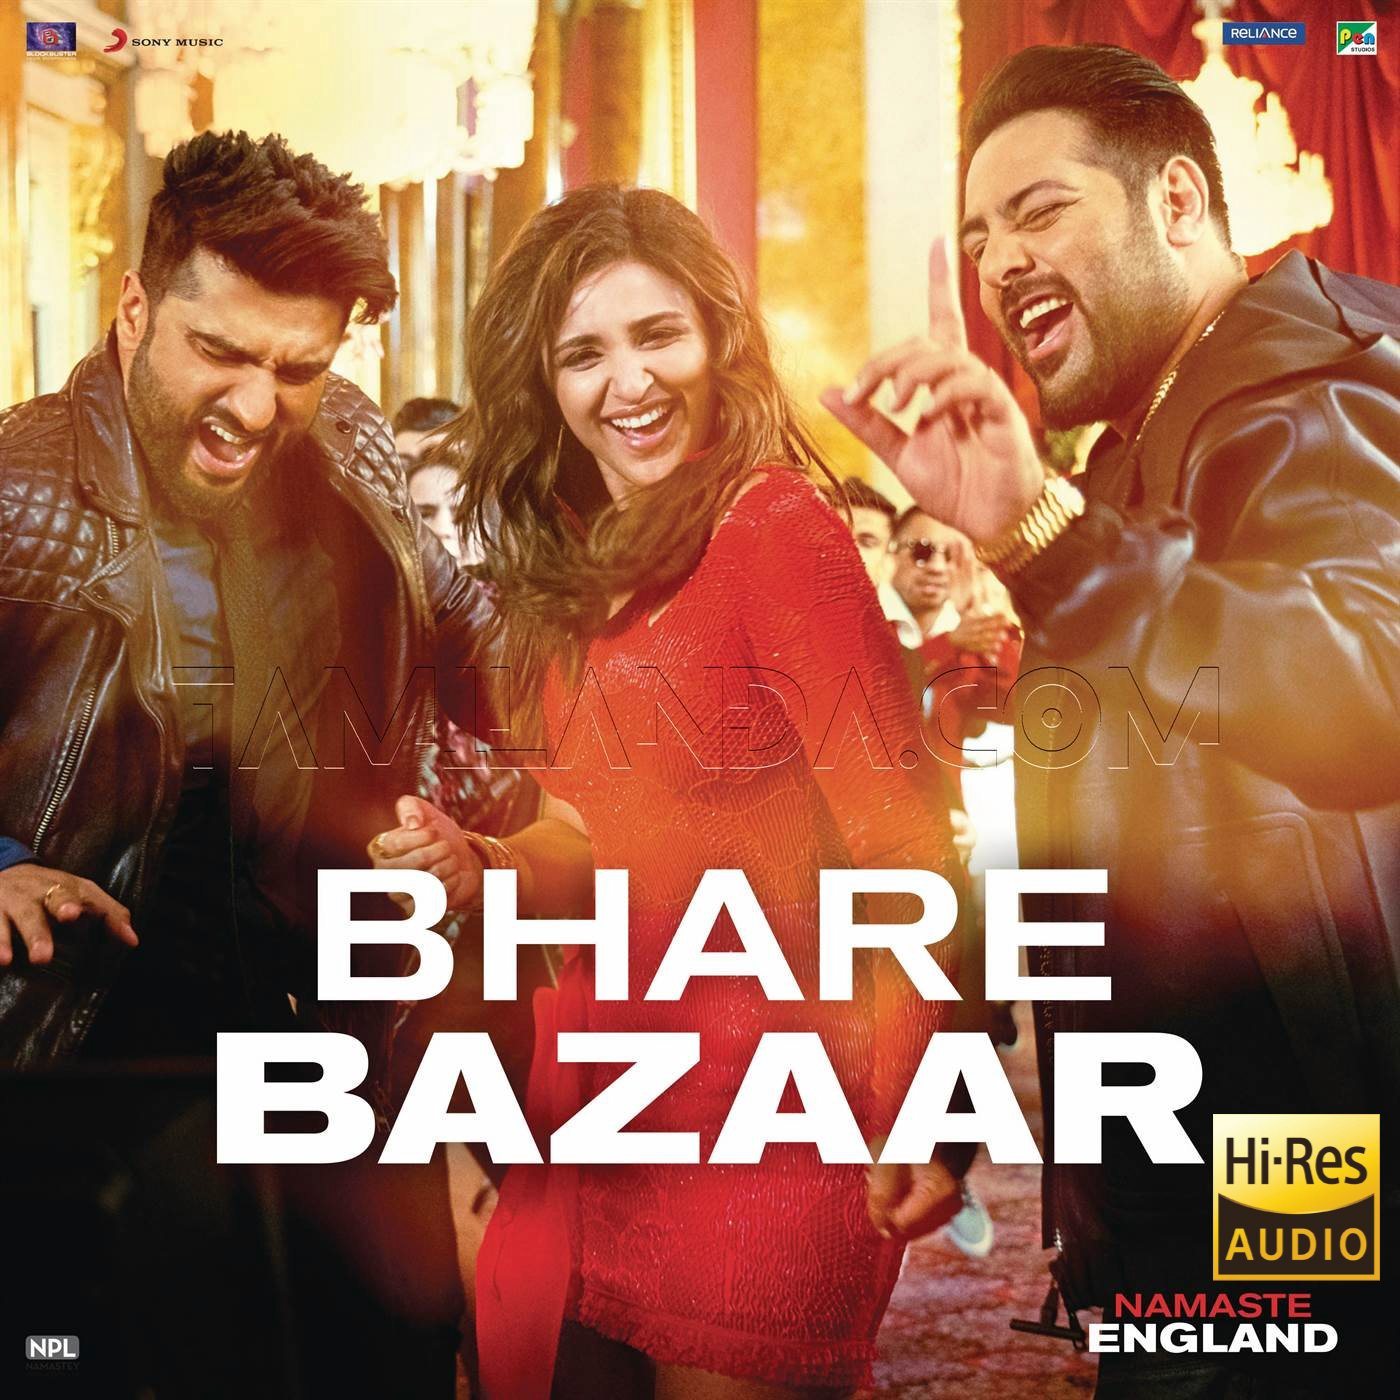 Bhare Bazaar (From Namaste England) – Single 24 BIT FLAC Song